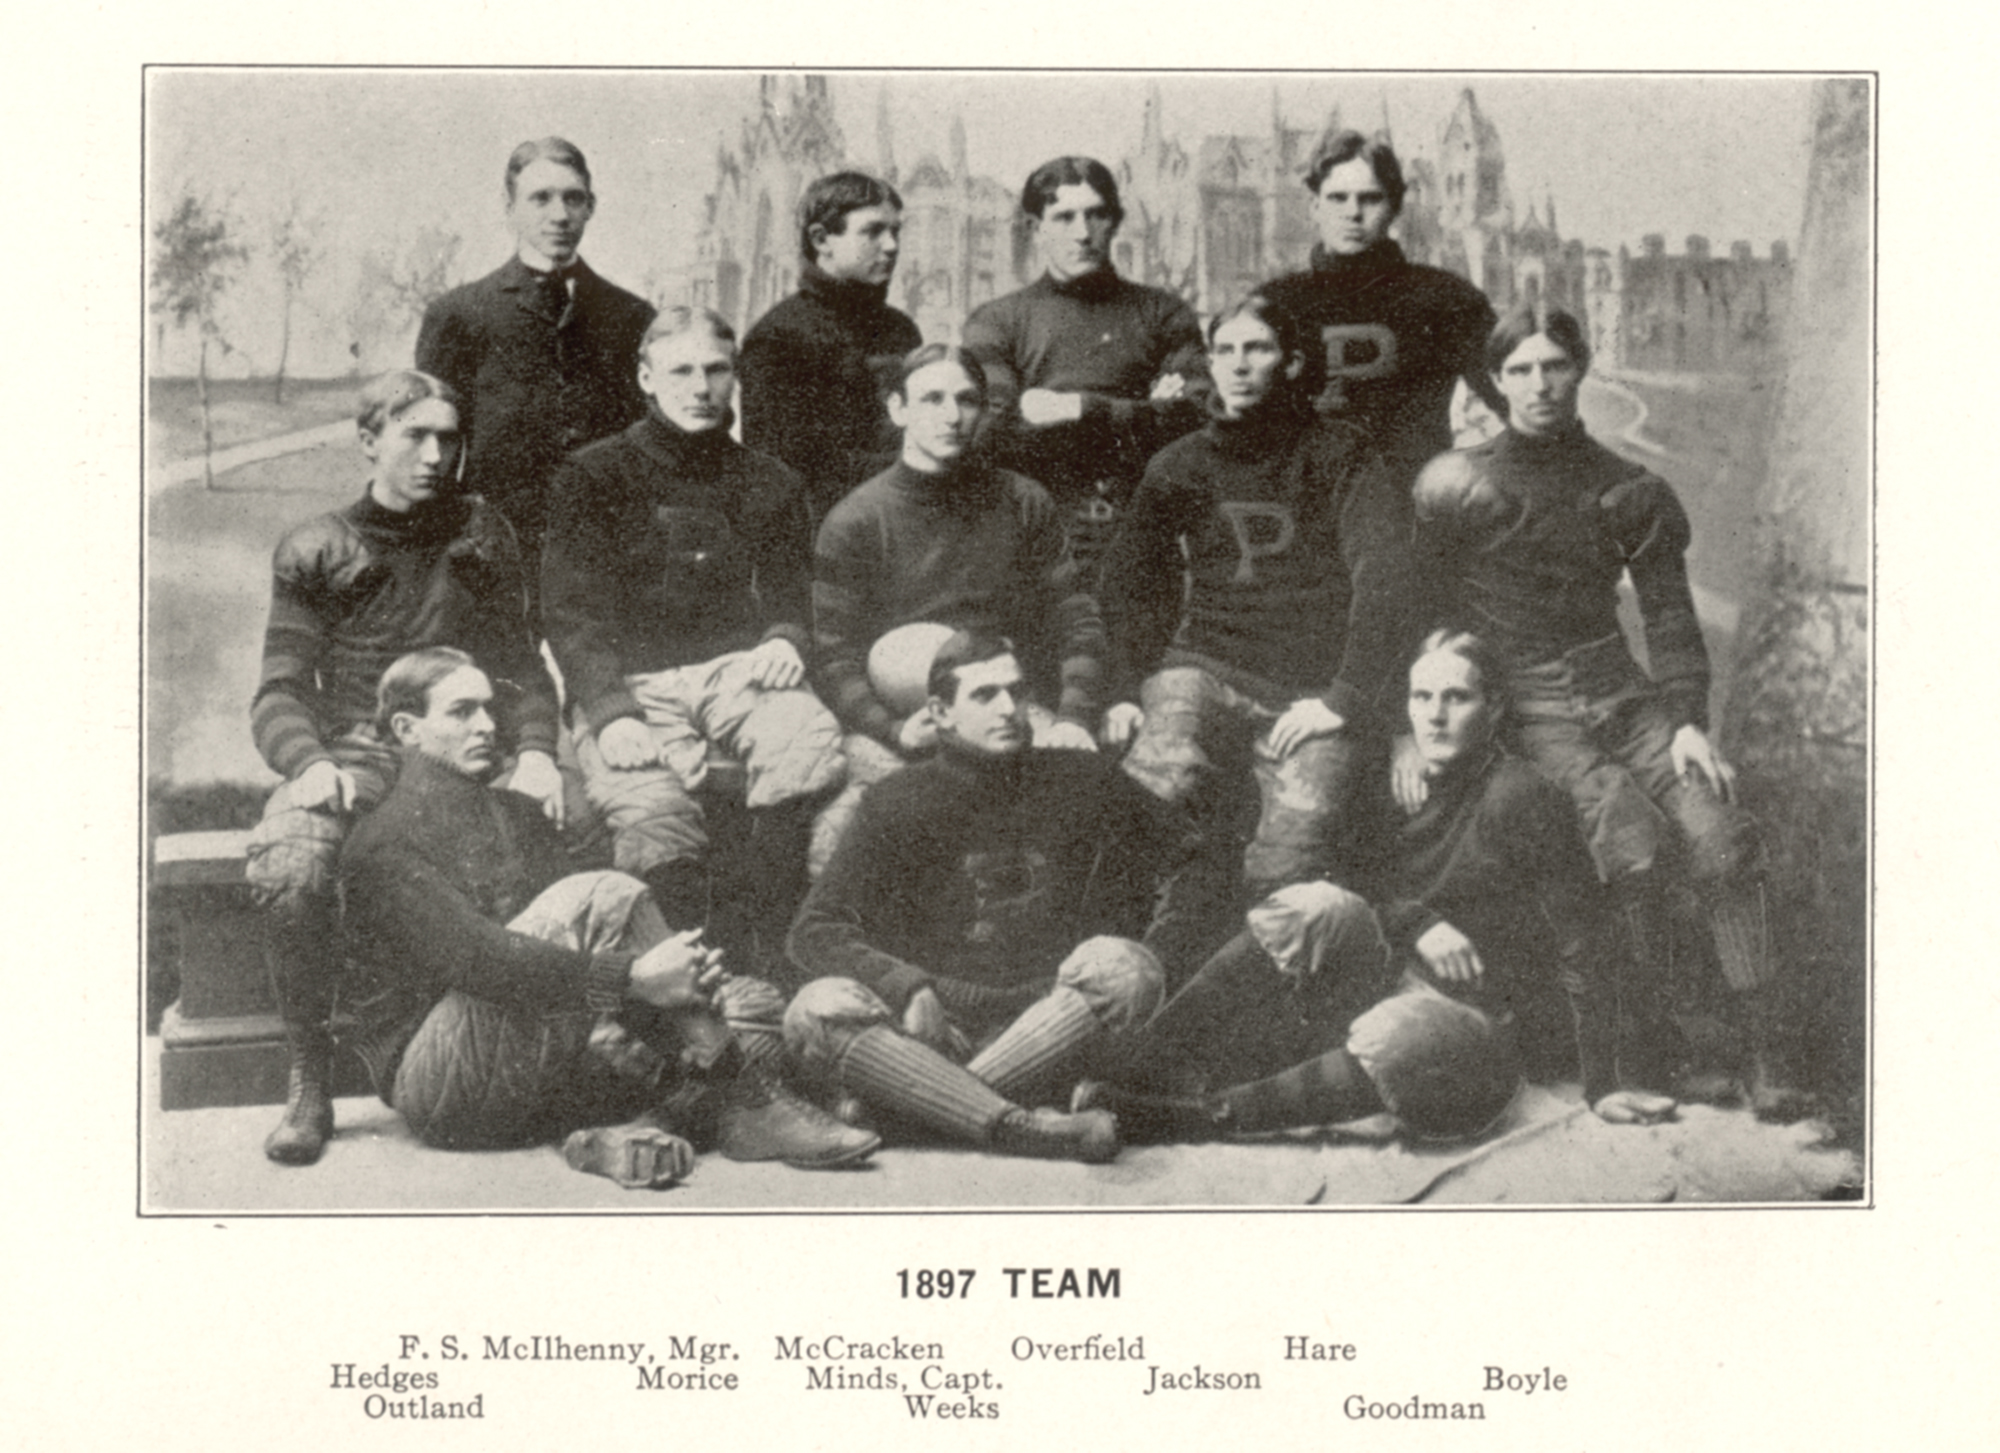 15-0: The 1897 Penn football team | Penn Today